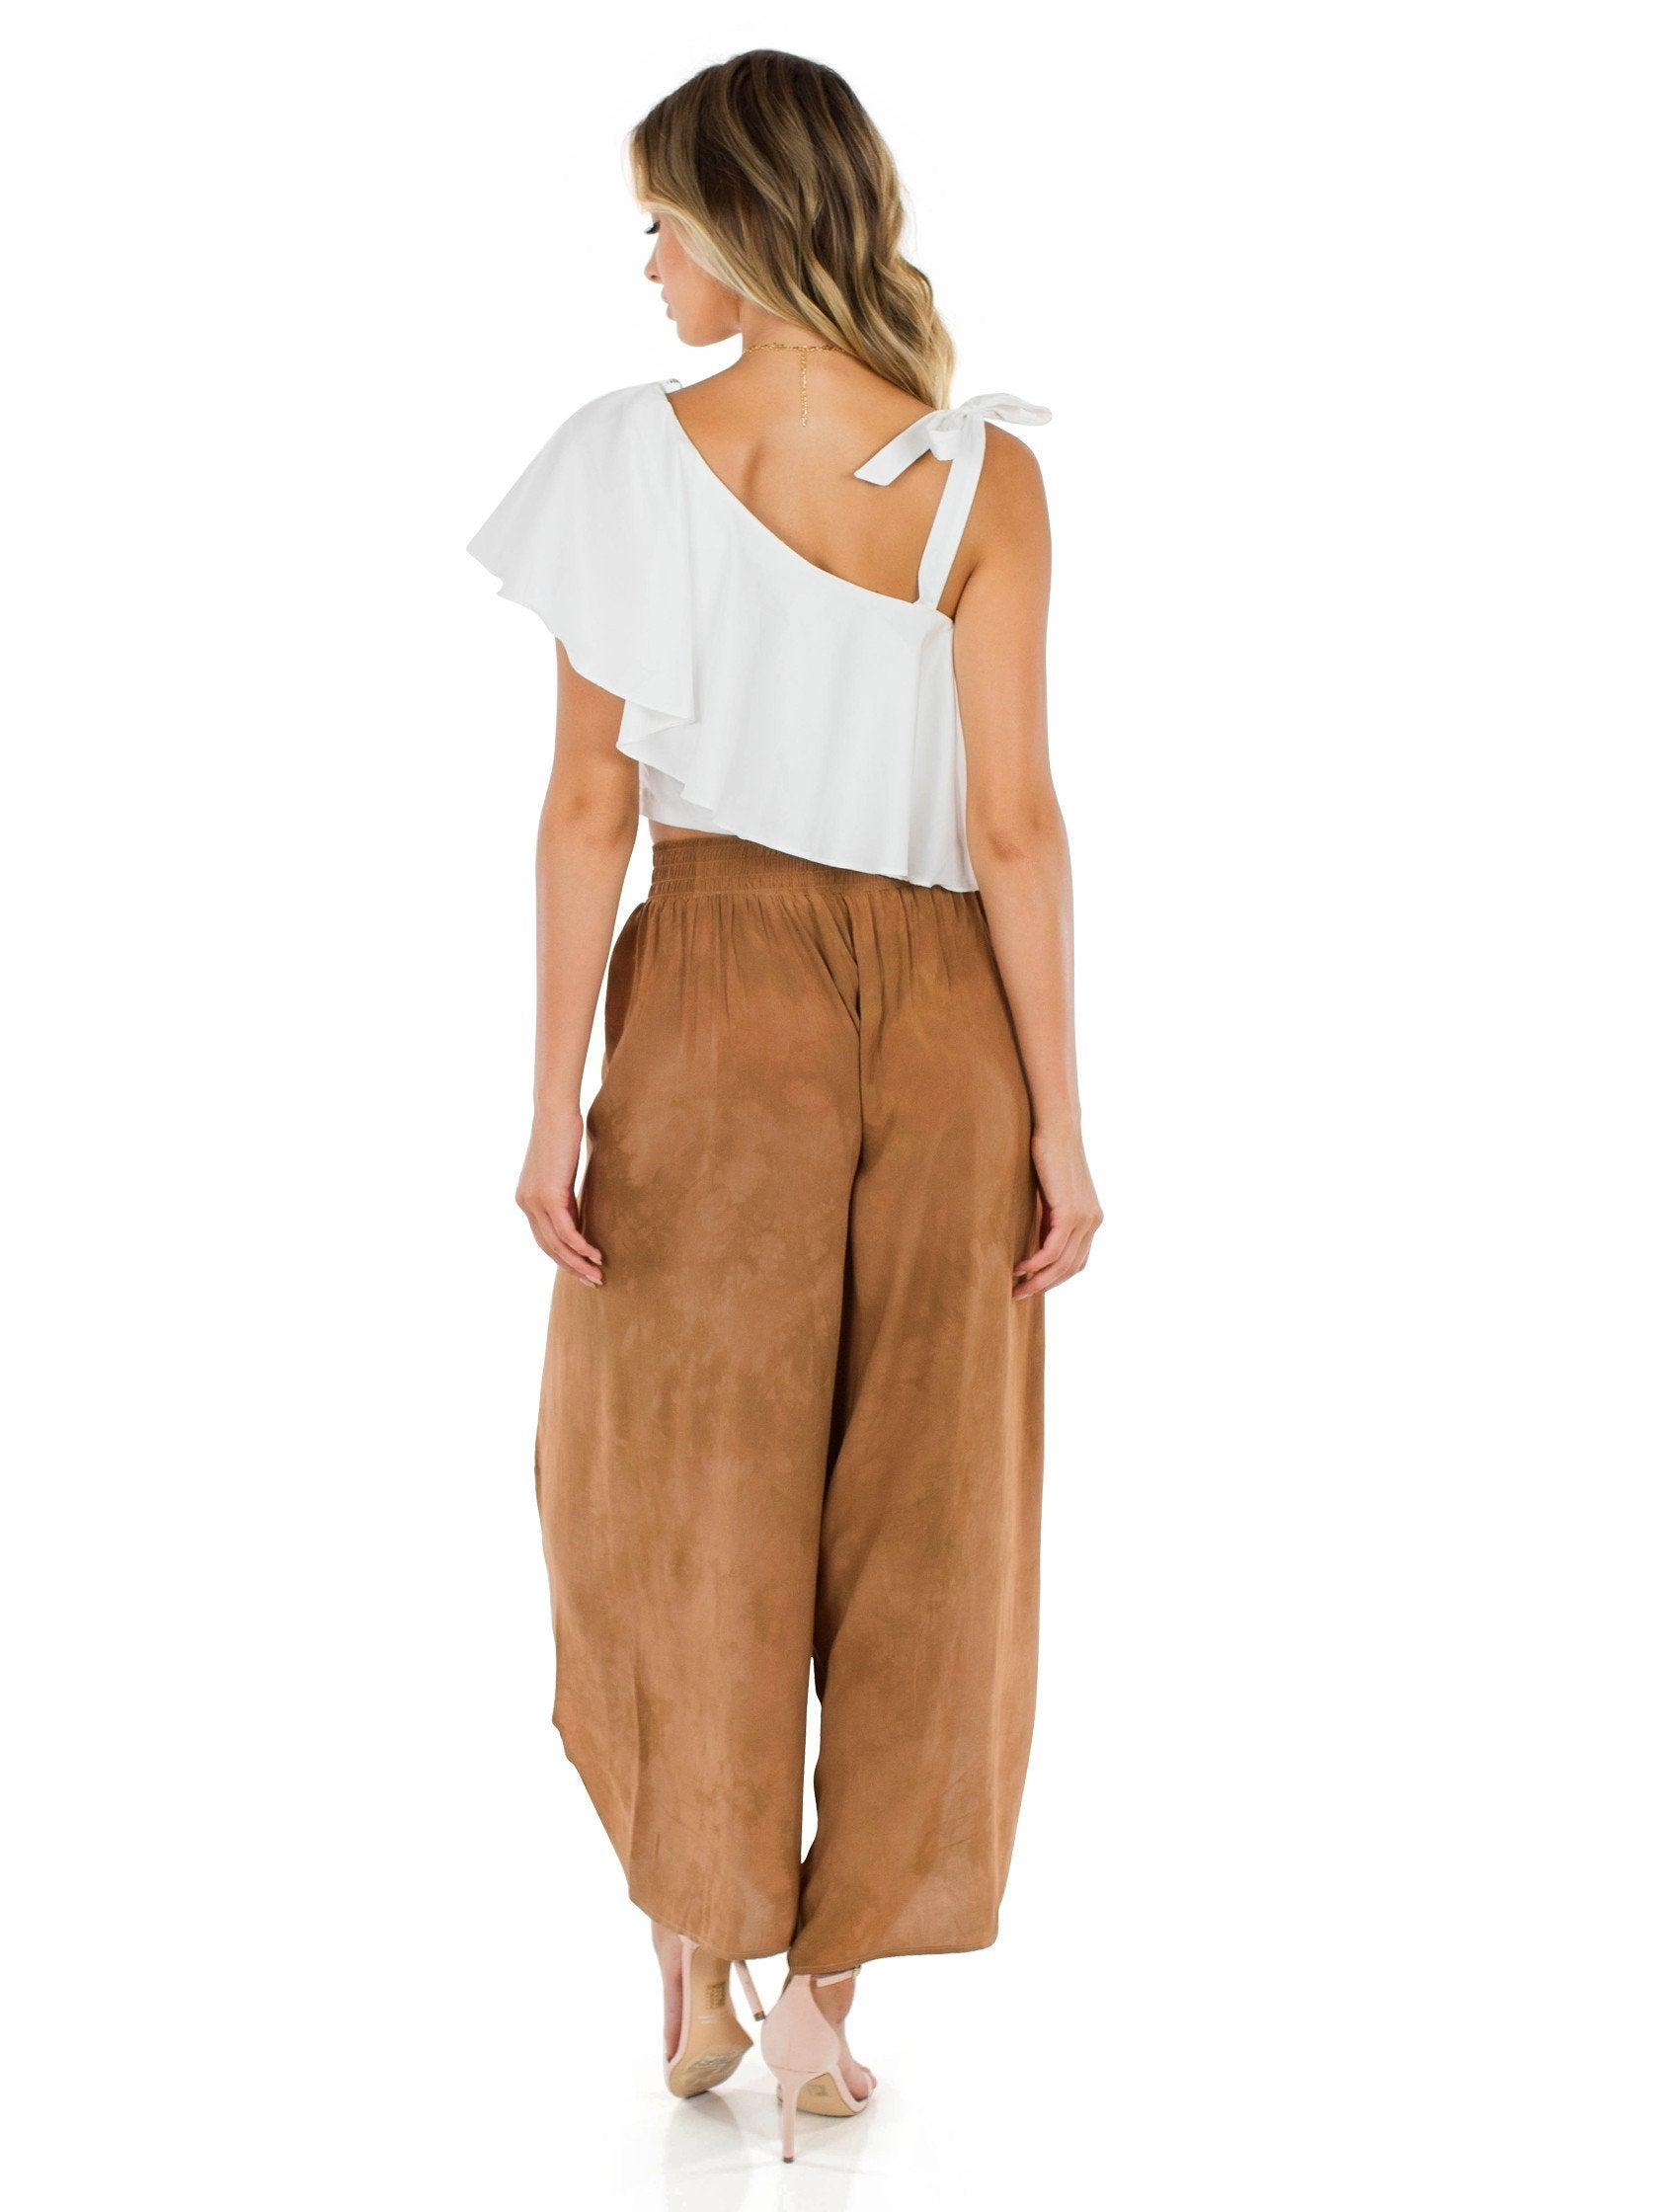 Women wearing a pants rental from Blue Life called Jeanne Wrap Culotte